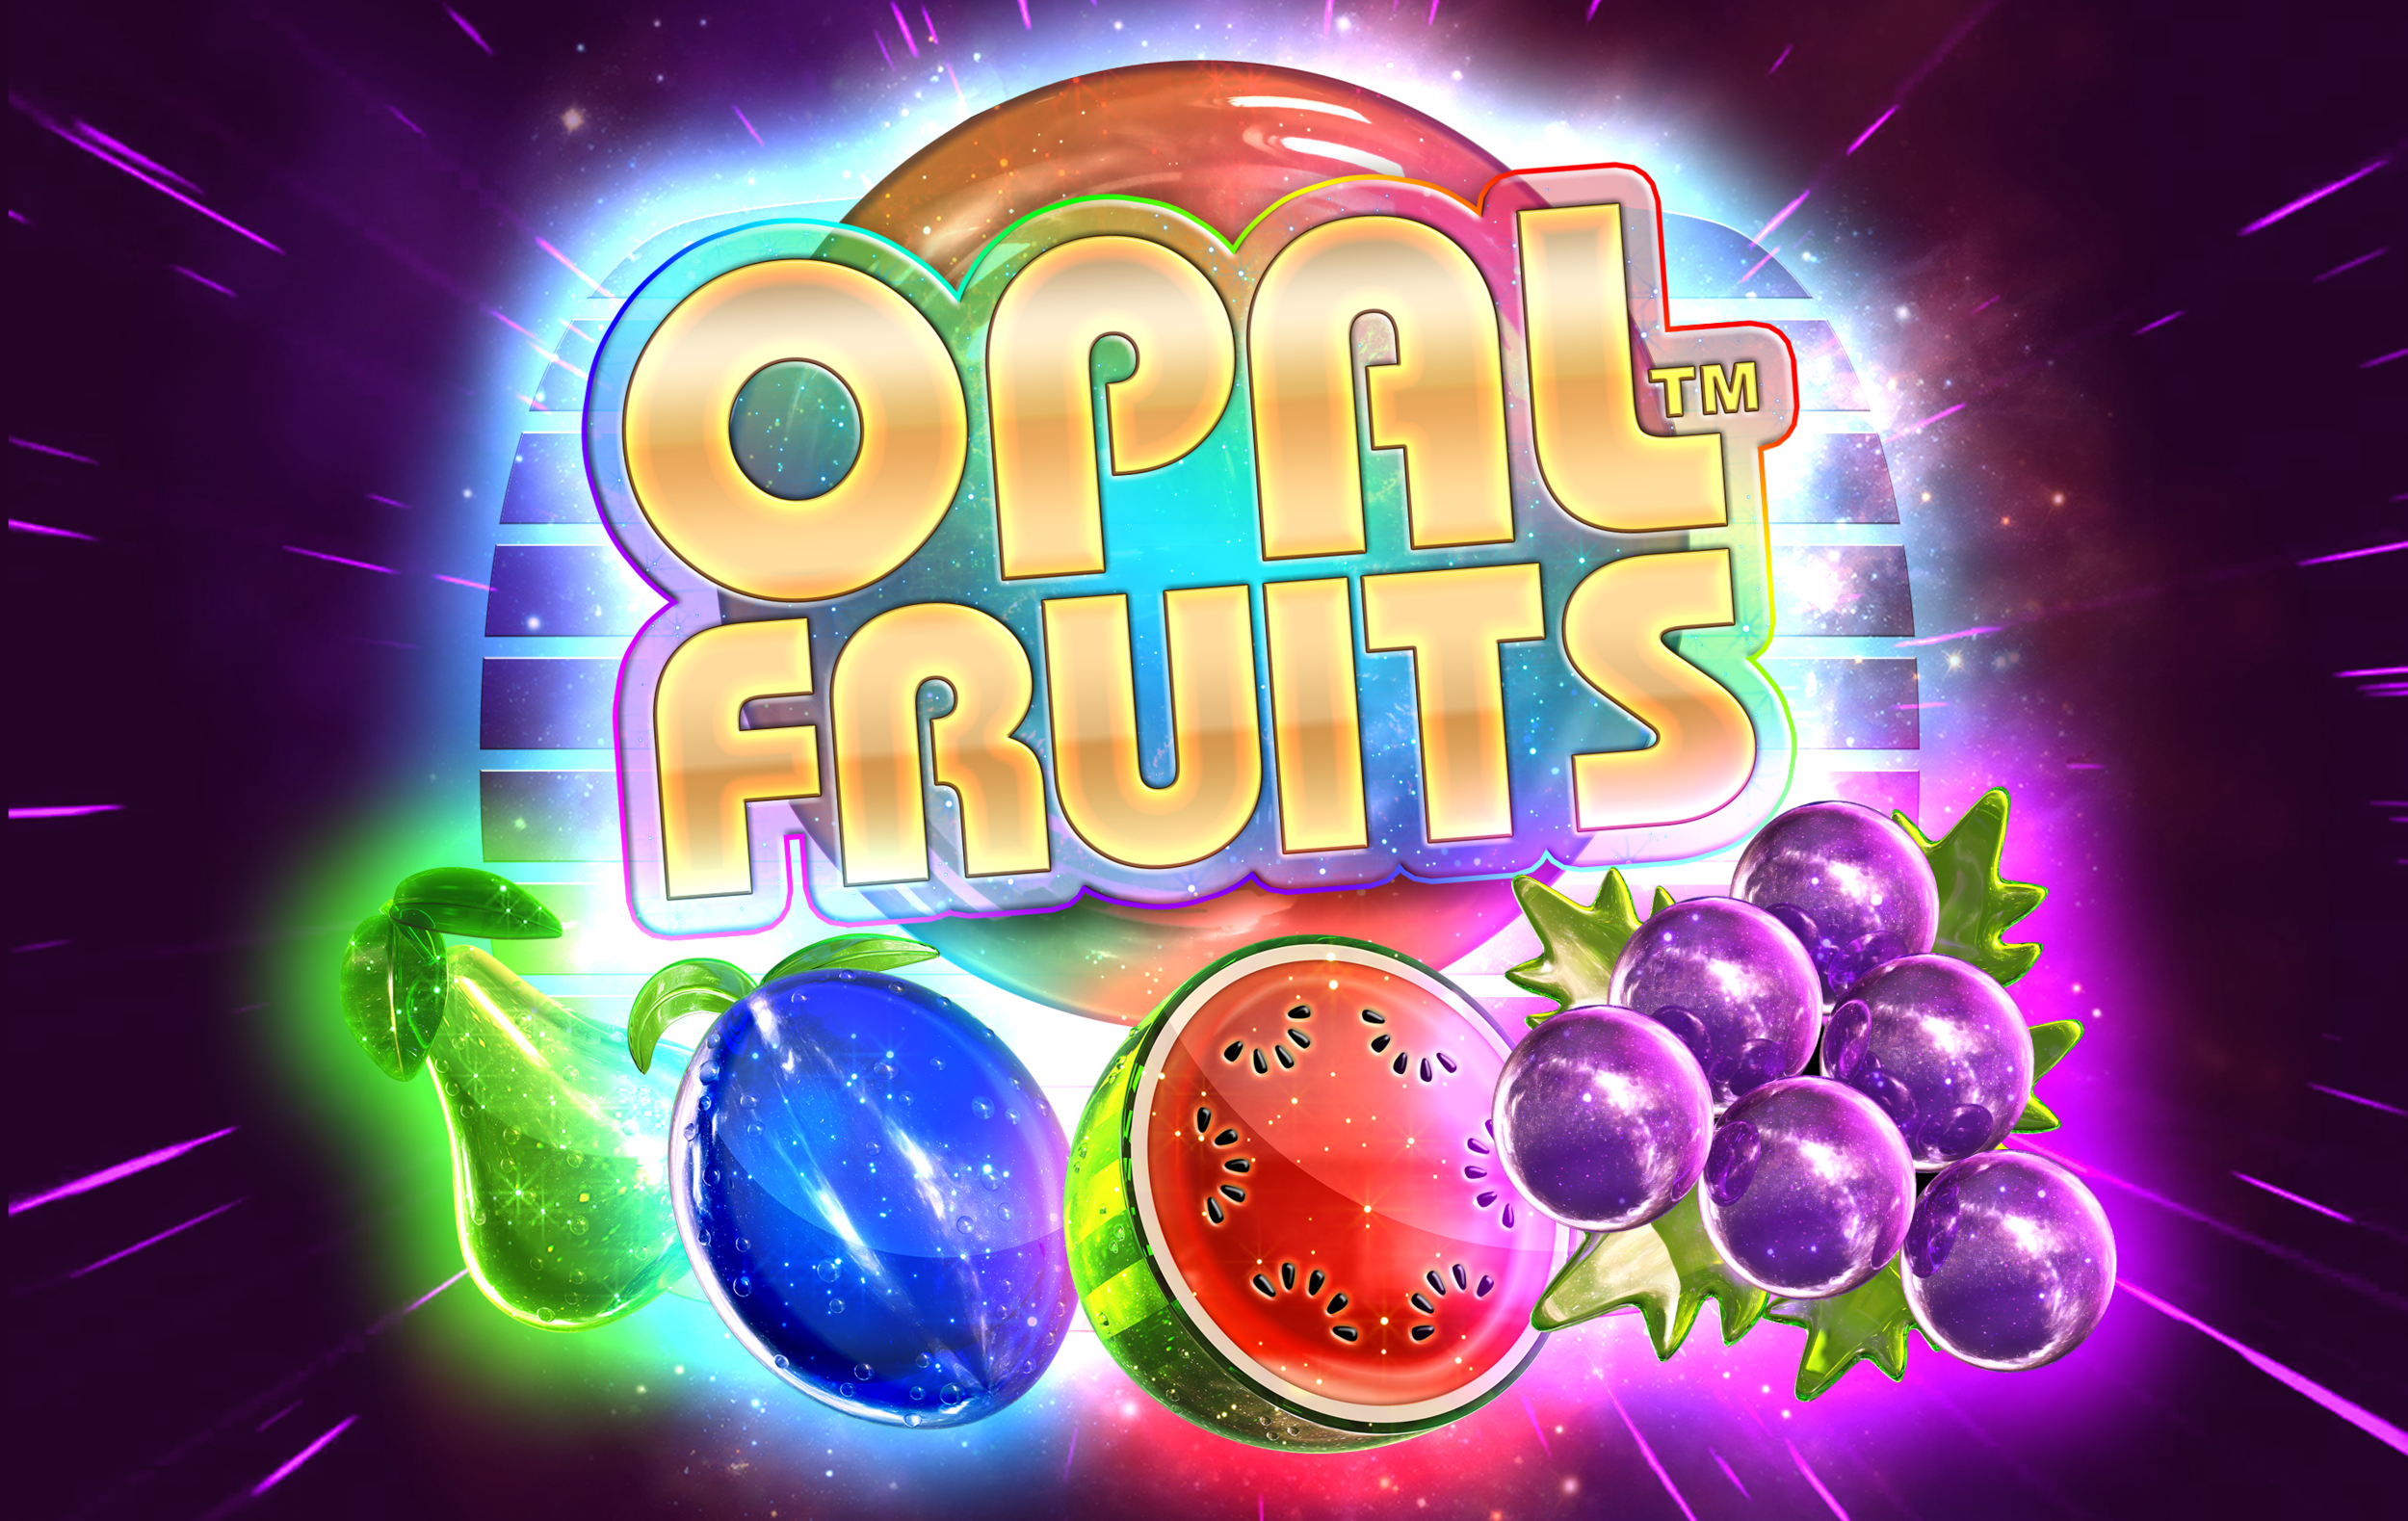 OpalFruits-Belly.png